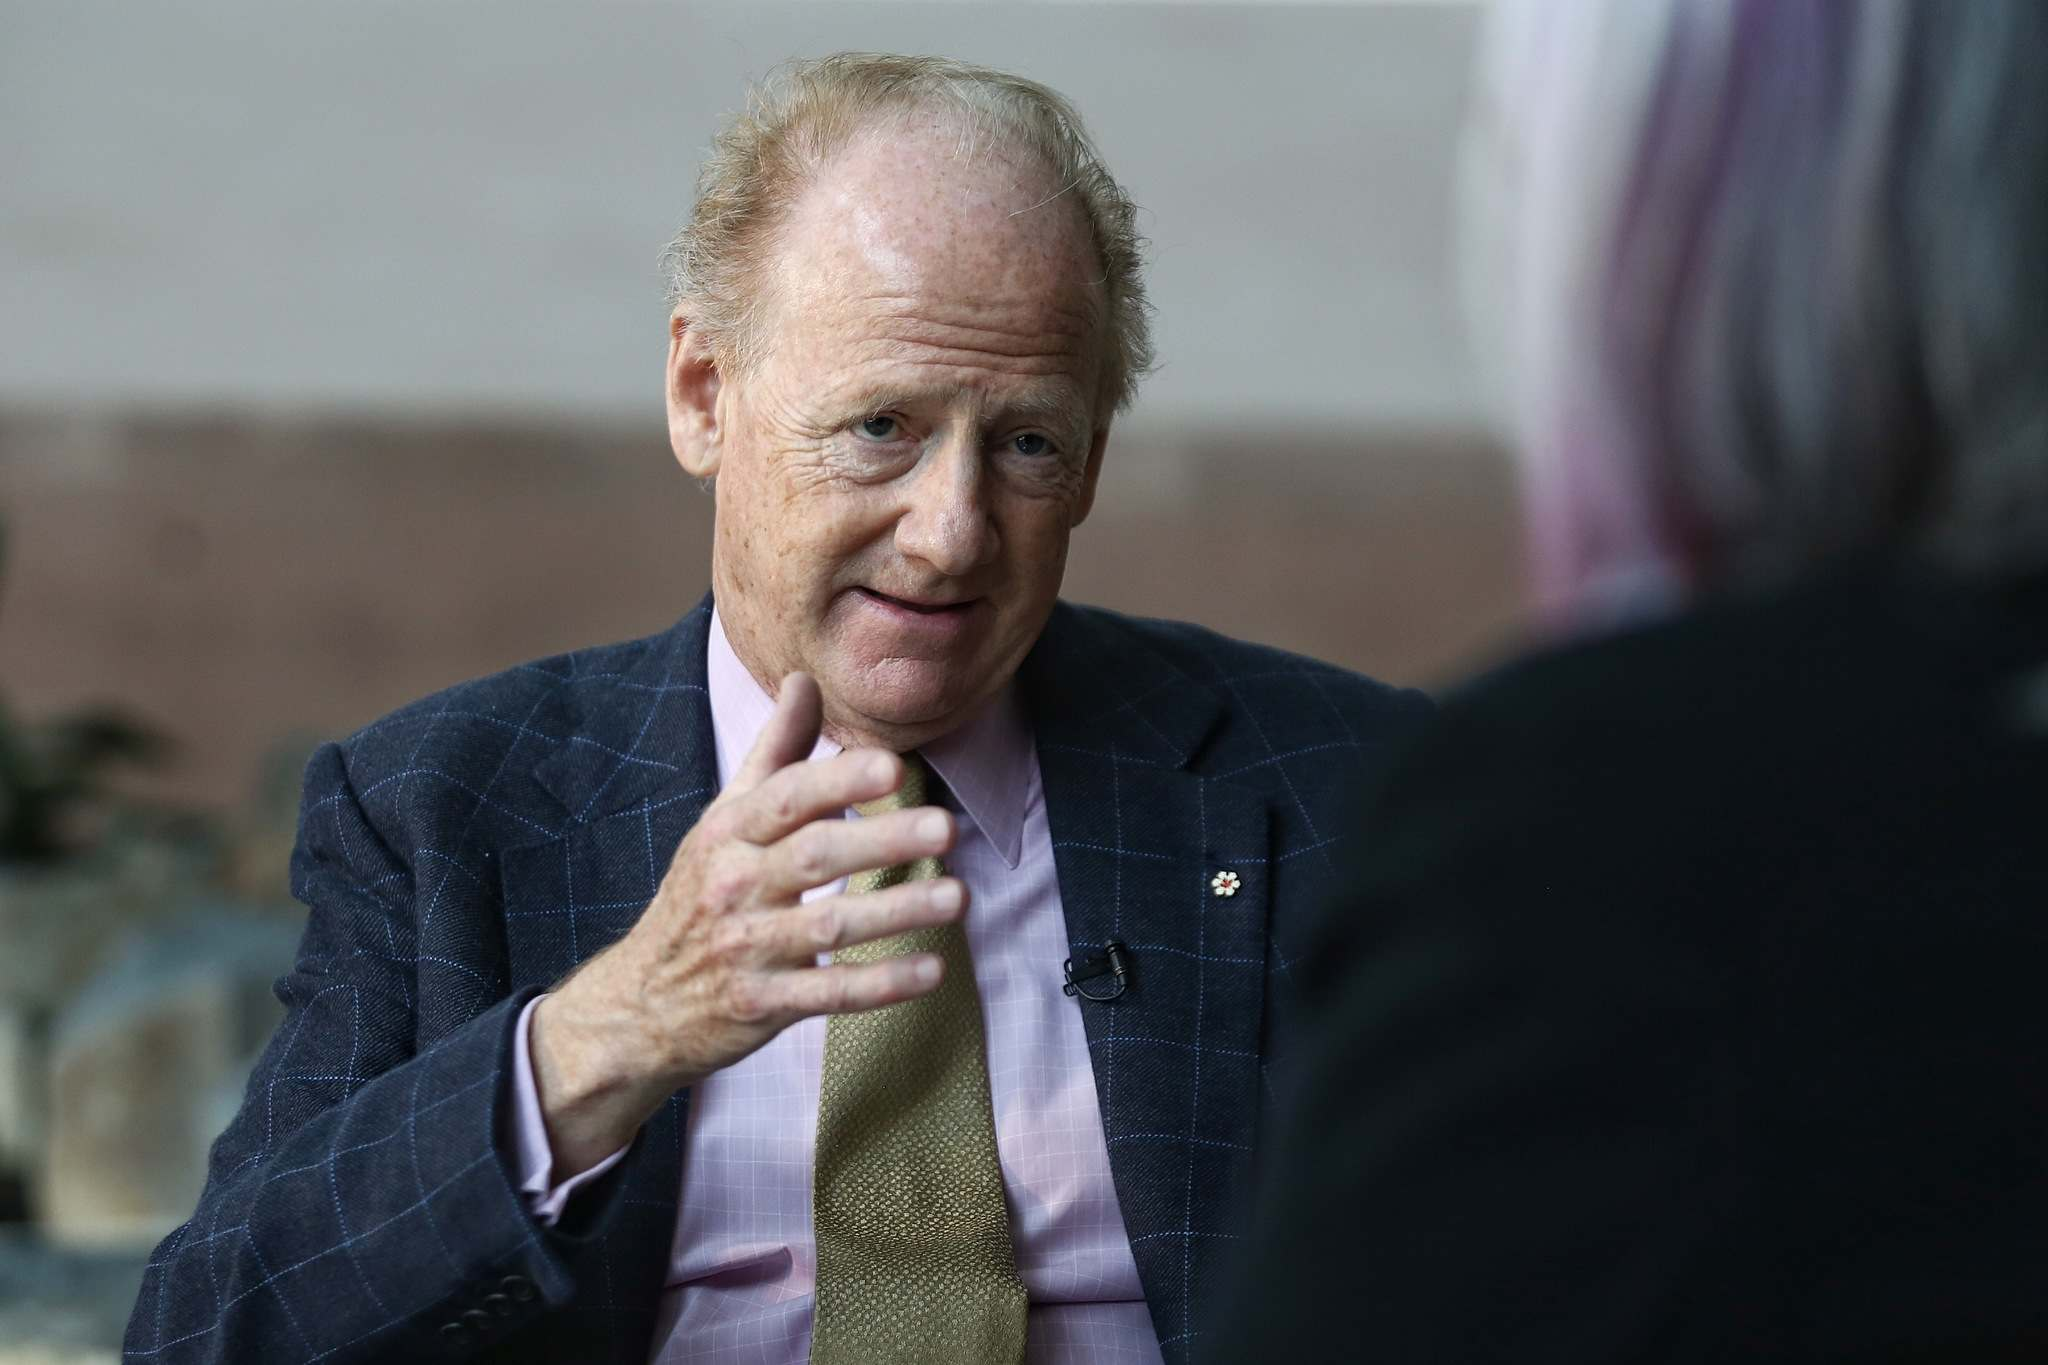 MIKE DEAL / WINNIPEG FREE PRESS</p><p>John Ralston Saul: lack of hope, confusion and nihilism leads to suicides. </p></p>